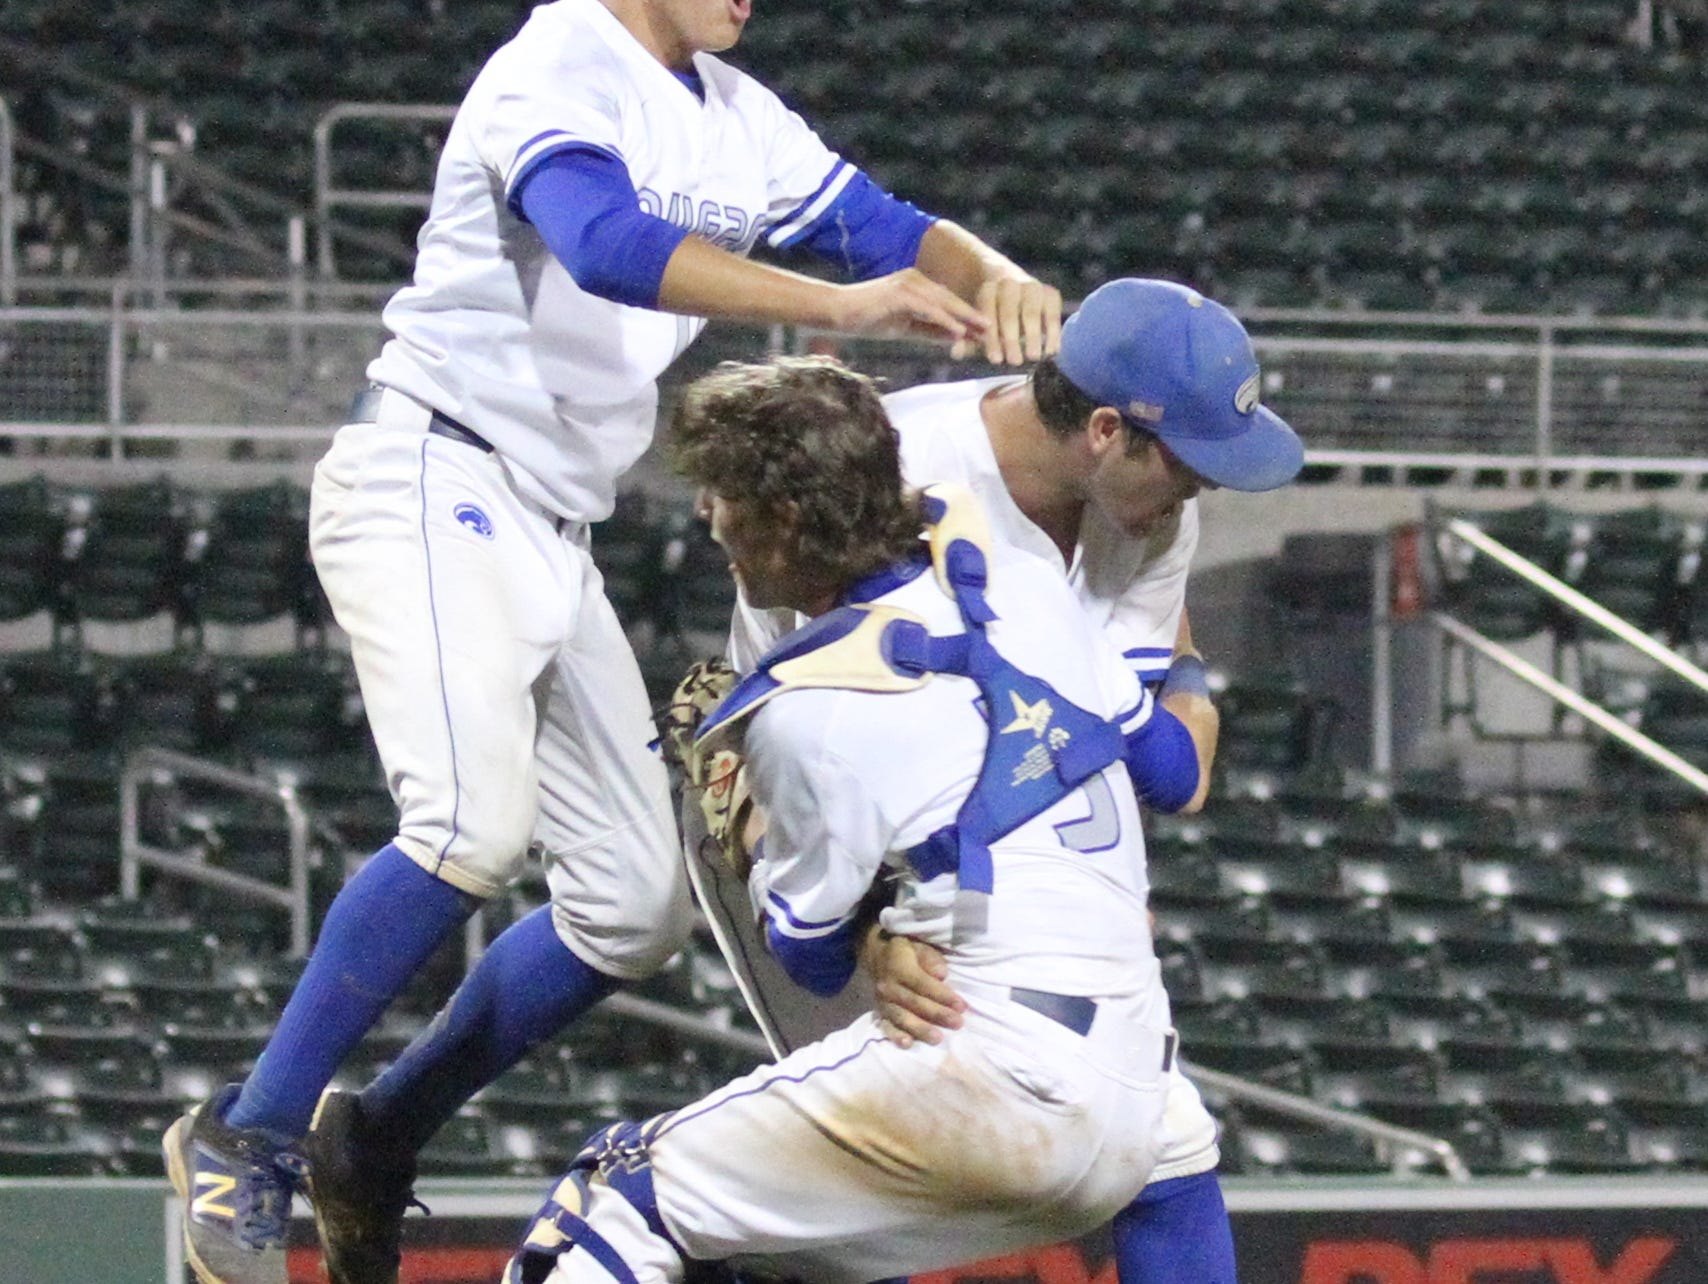 The Canterbury baseball team claimed its first state title in school history with a 6-0 win over Lakeland Santa Fe Catholic on Saturday in the Class 3A at JetBlue Park.